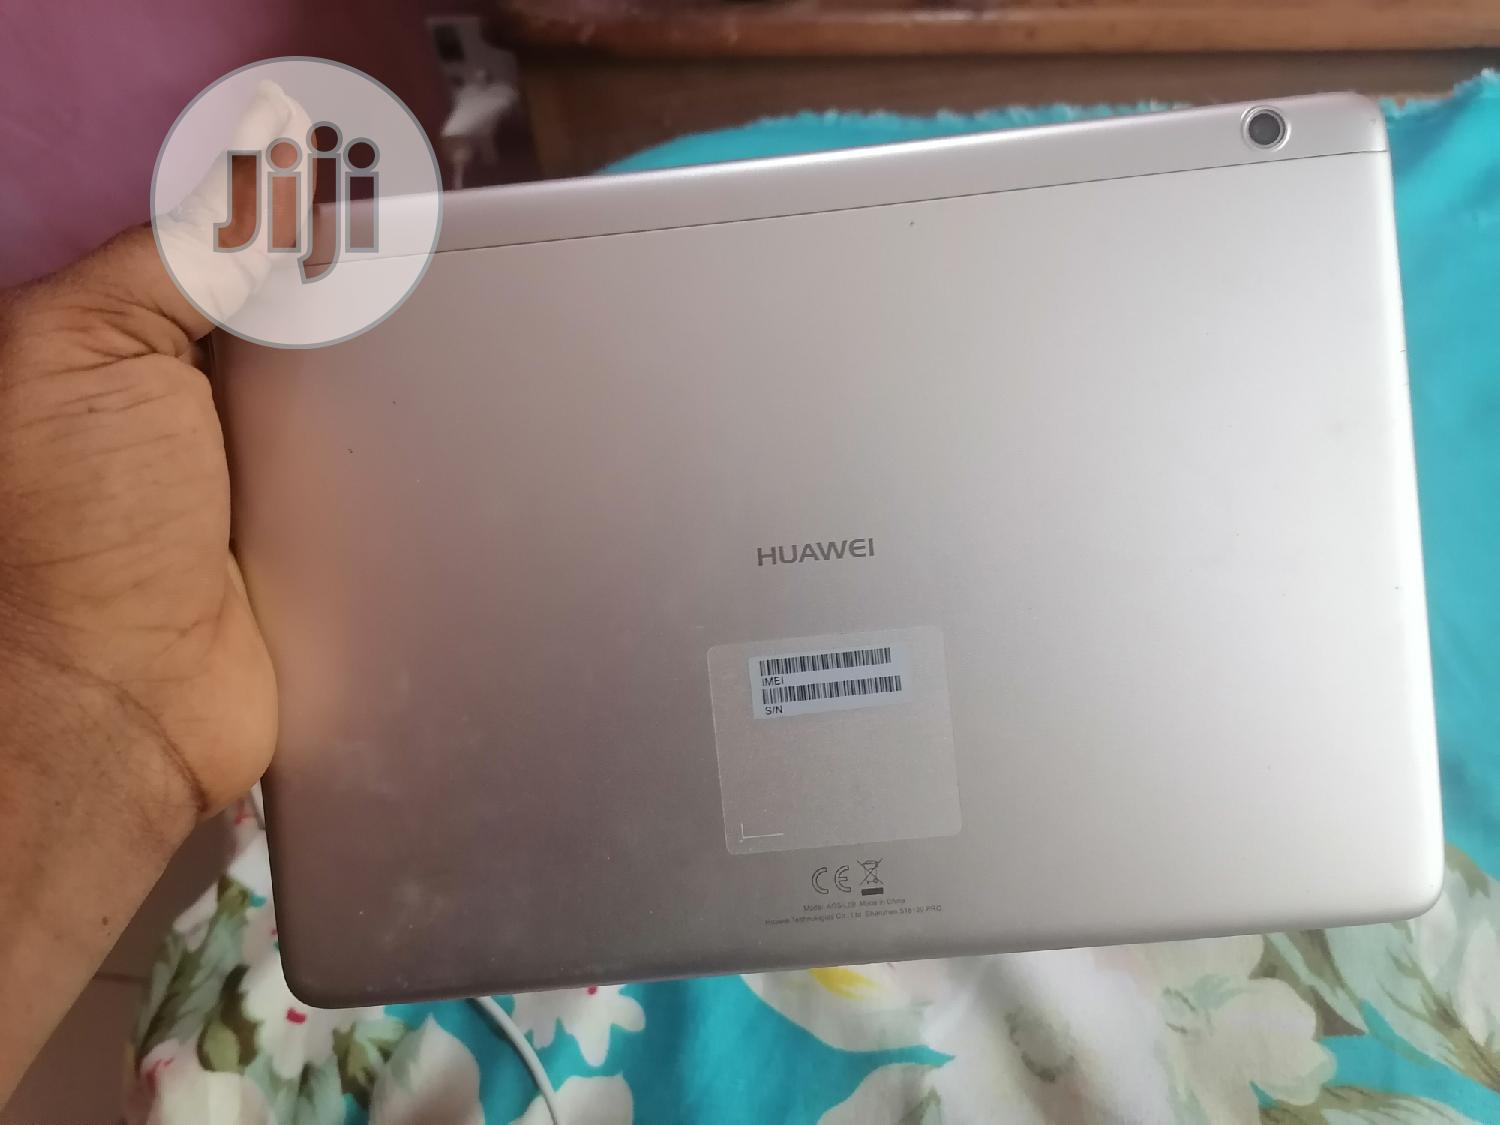 Huawei MediaPad T3 10 16 GB White | Tablets for sale in Ipaja, Lagos State, Nigeria